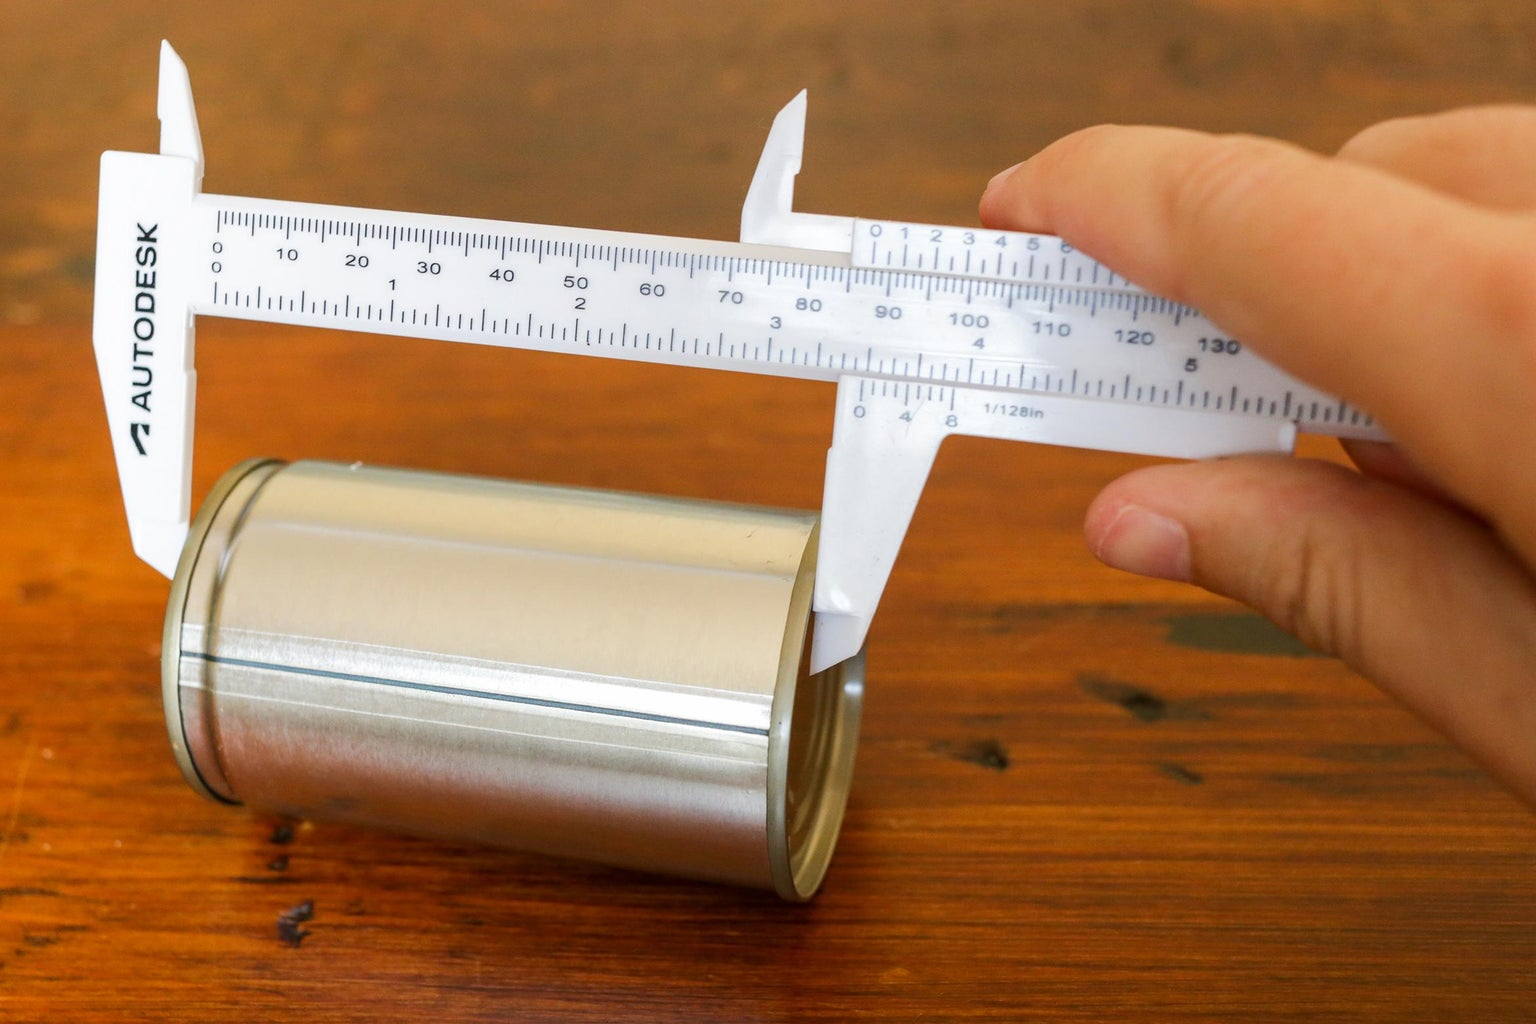 Measuring the Dimensions of a Cylinder